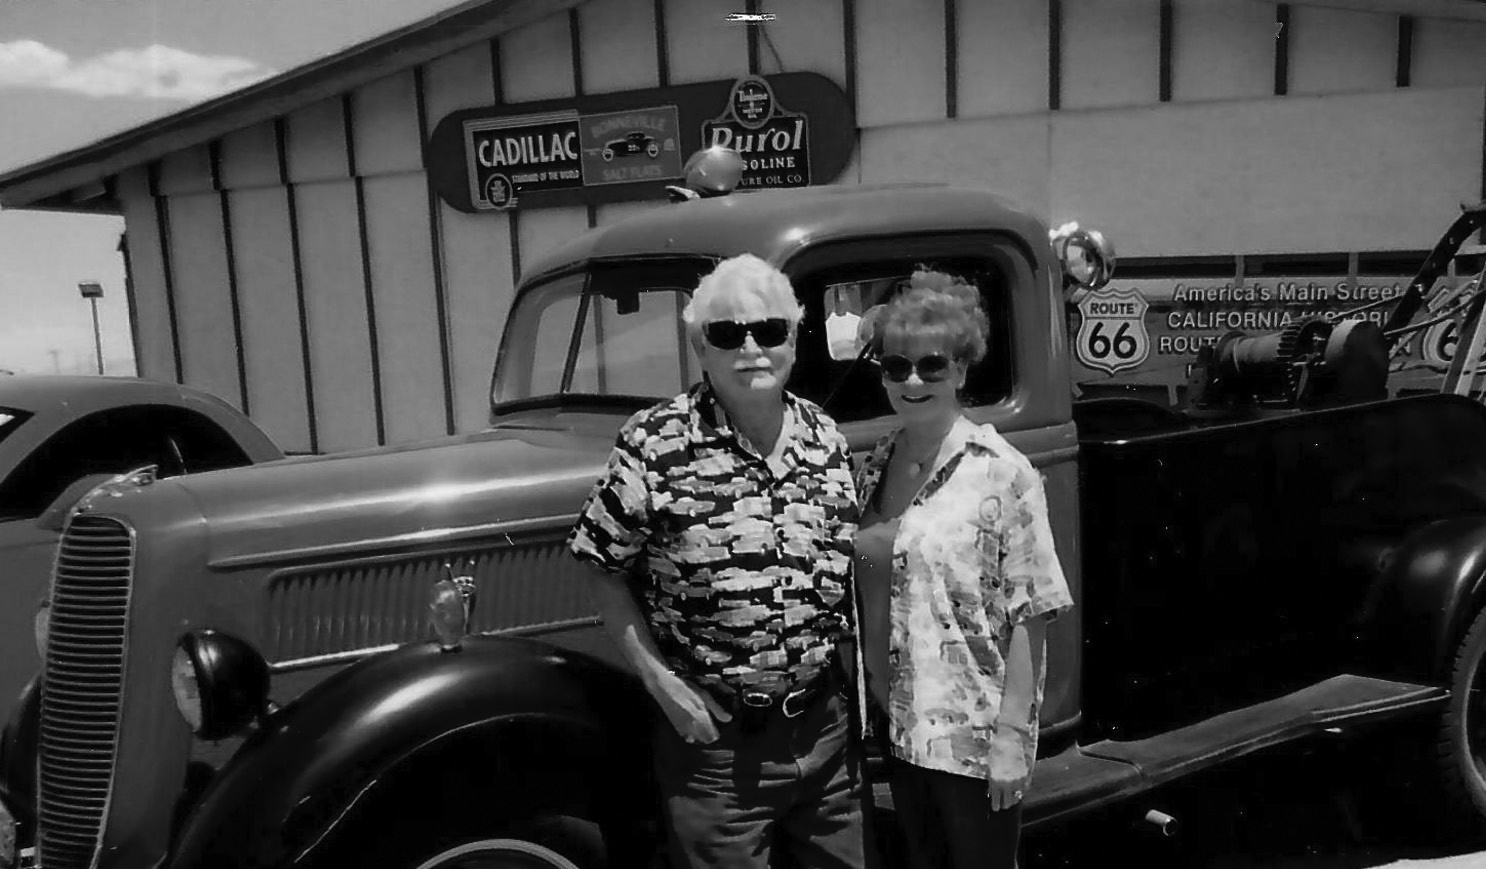 """C.A. & Debbie Stevens of Apple Valley will be the grand marshals of the parade. Their Summit Inn Diner was a legendary stop along the old """"Route 66."""""""